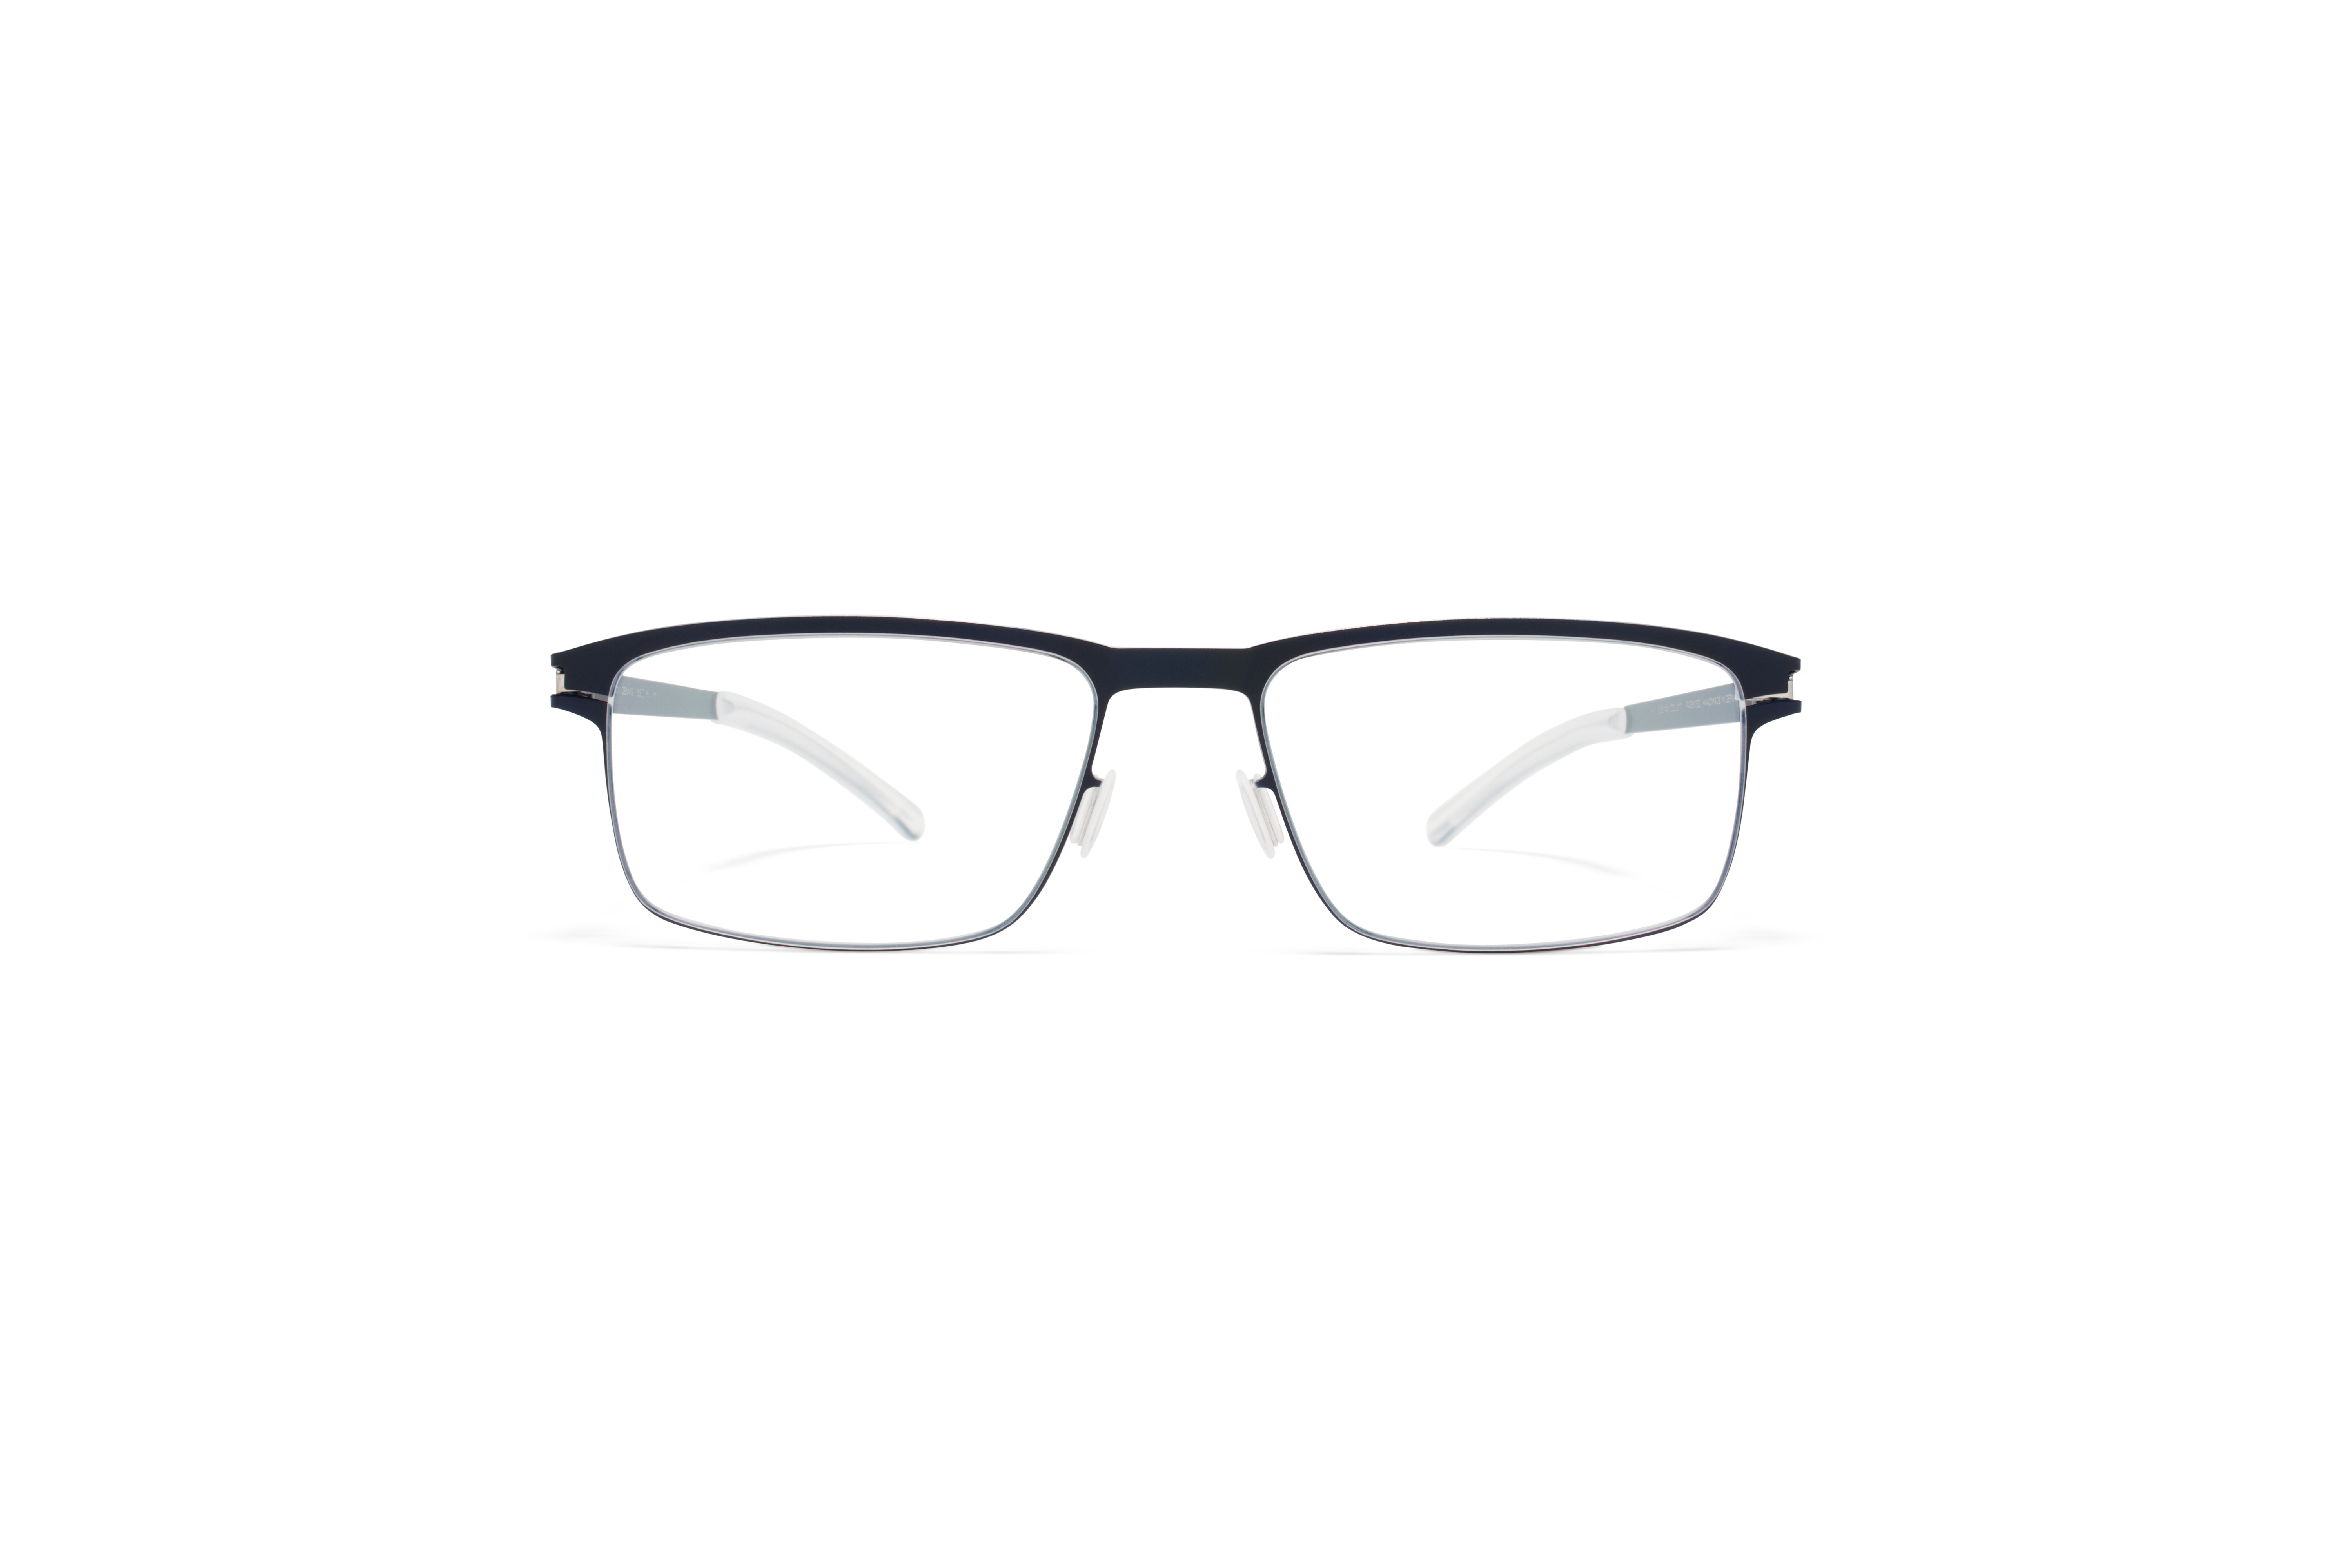 MYKITA No1 Rx Dennis Nightsky Silver Edges Clear